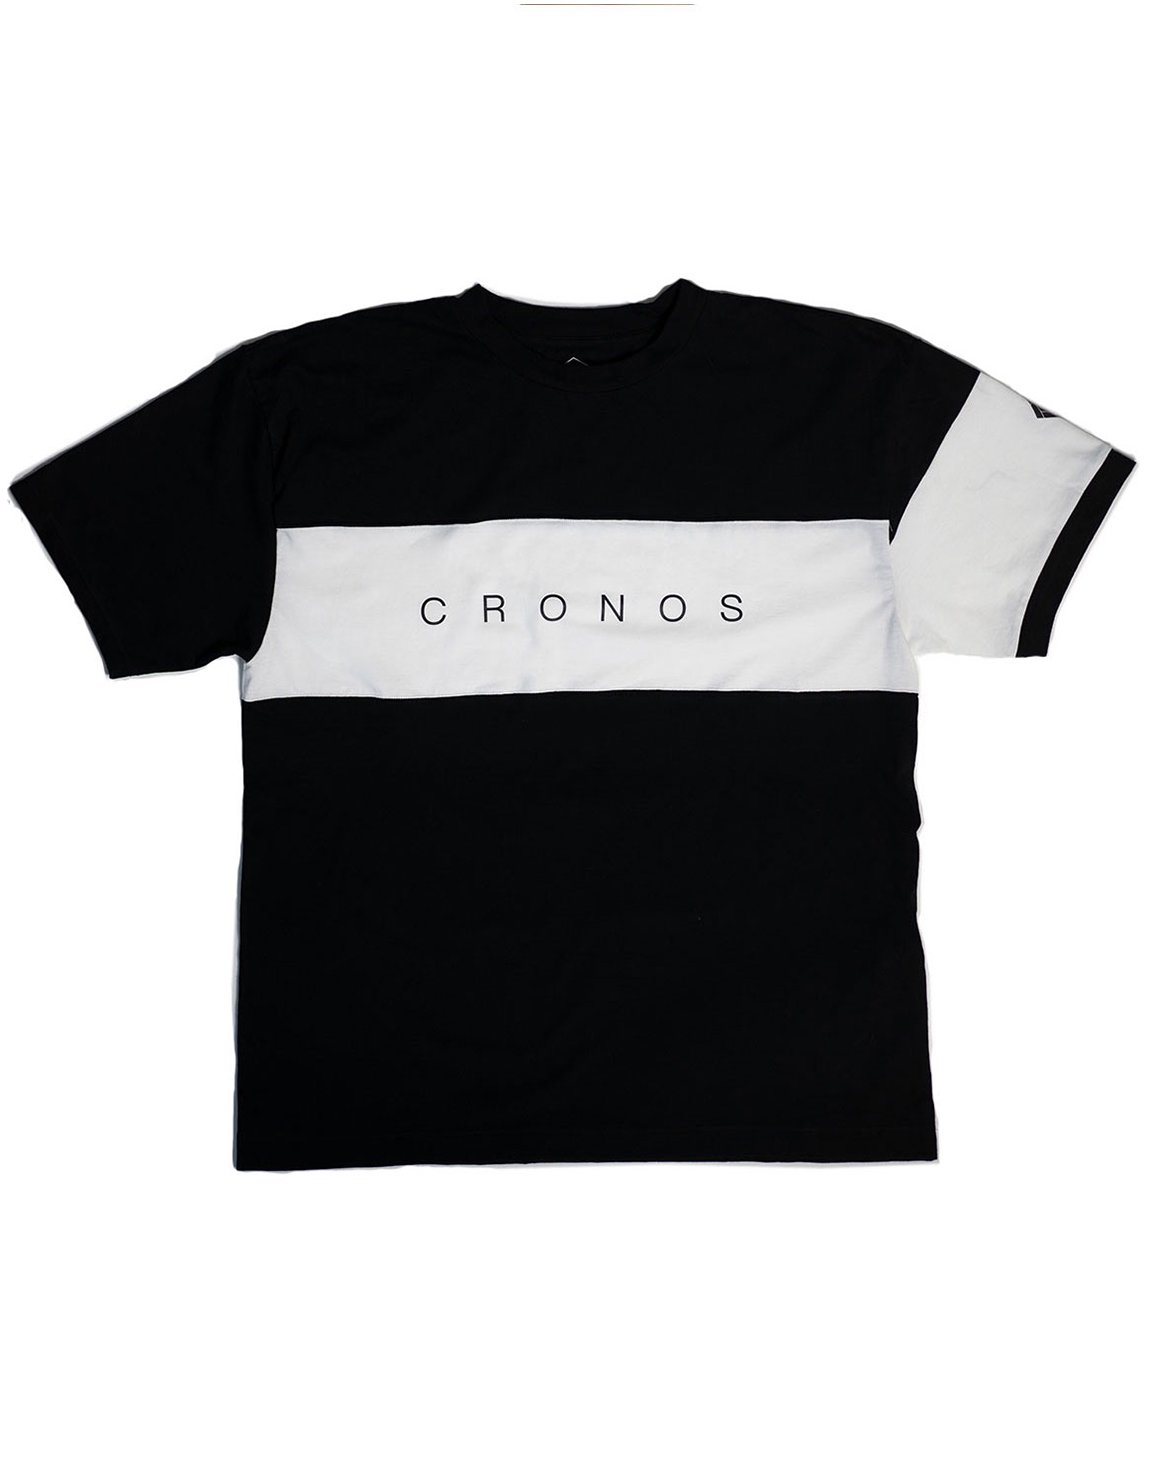 <img class='new_mark_img1' src='https://img.shop-pro.jp/img/new/icons1.gif' style='border:none;display:inline;margin:0px;padding:0px;width:auto;' />CRONOS FRONT THICK LINE  T-SHIRT BLACK